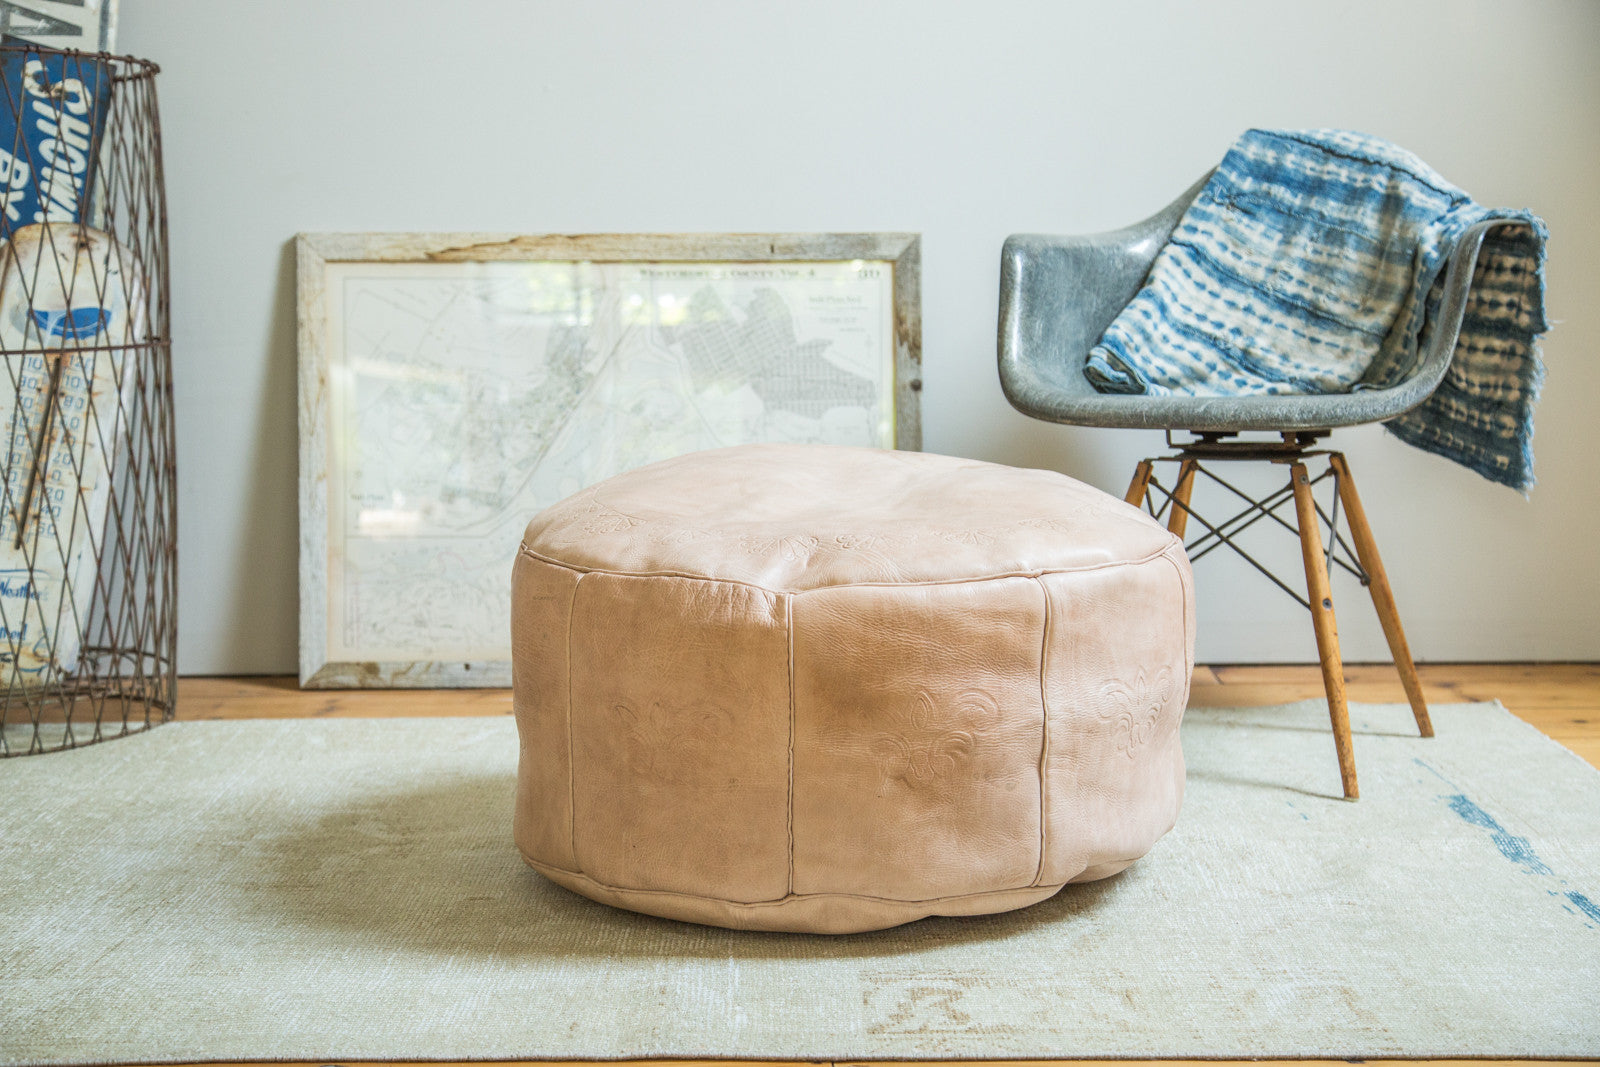 moroccan ottoman leather moroccan pouf modern holding category  - nude pink bohemian style large leather pouf ottoman onh pouf